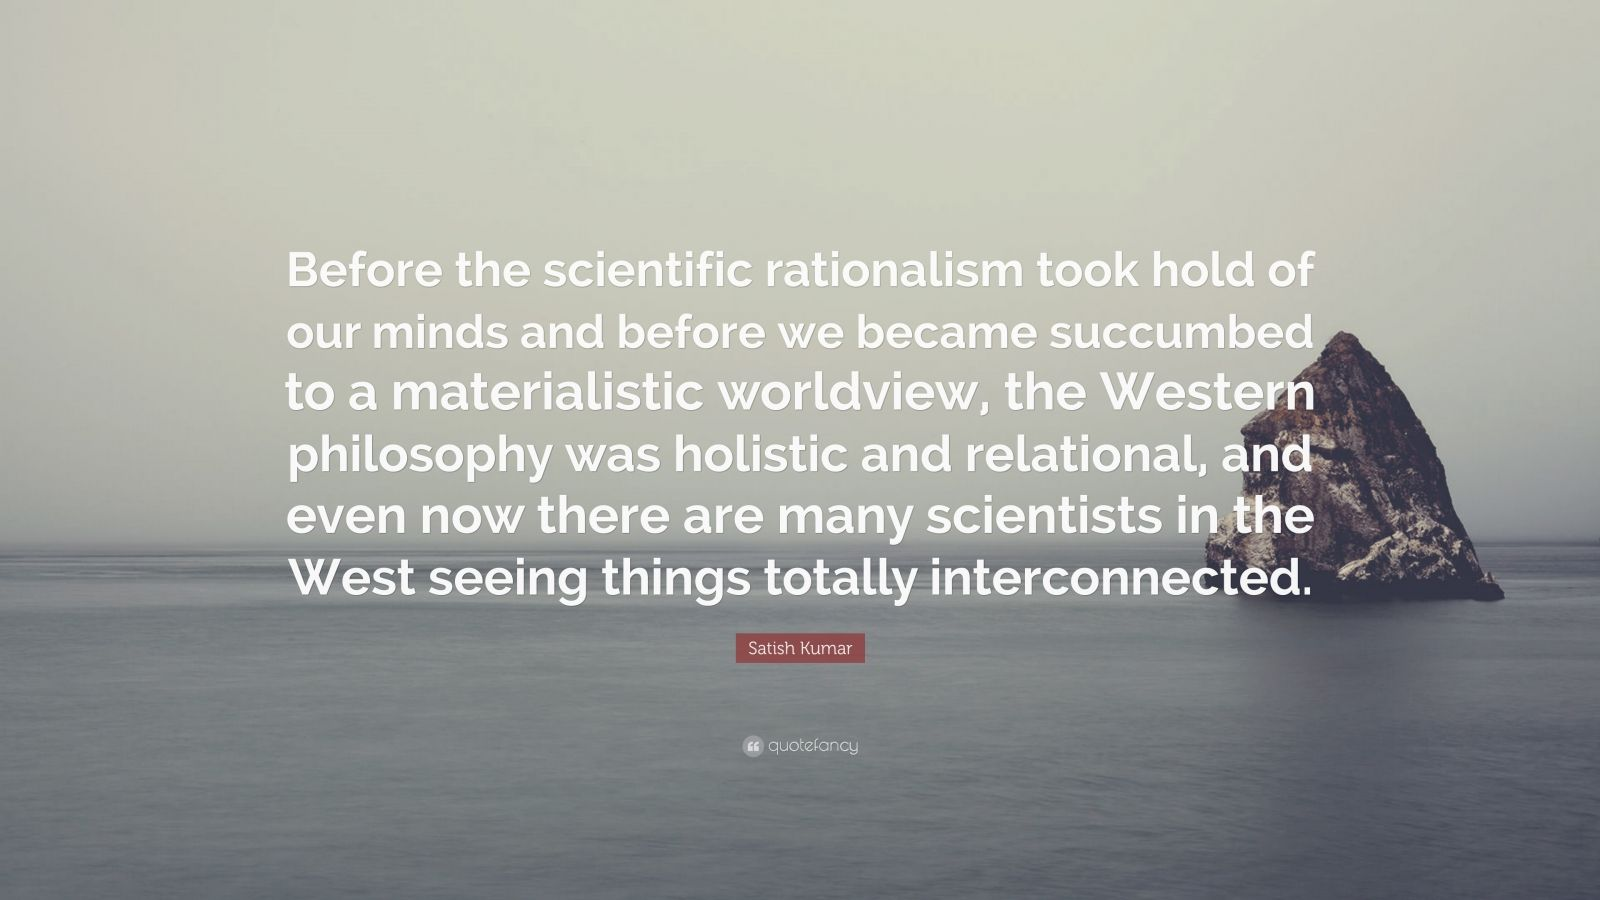 """Satish Kumar Quote: """"Before the scientific rationalism took hold of our minds and before we became succumbed to a materialistic worldview, the Western philosophy was holistic and relational, and even now there are many scientists in the West seeing things totally interconnected."""""""